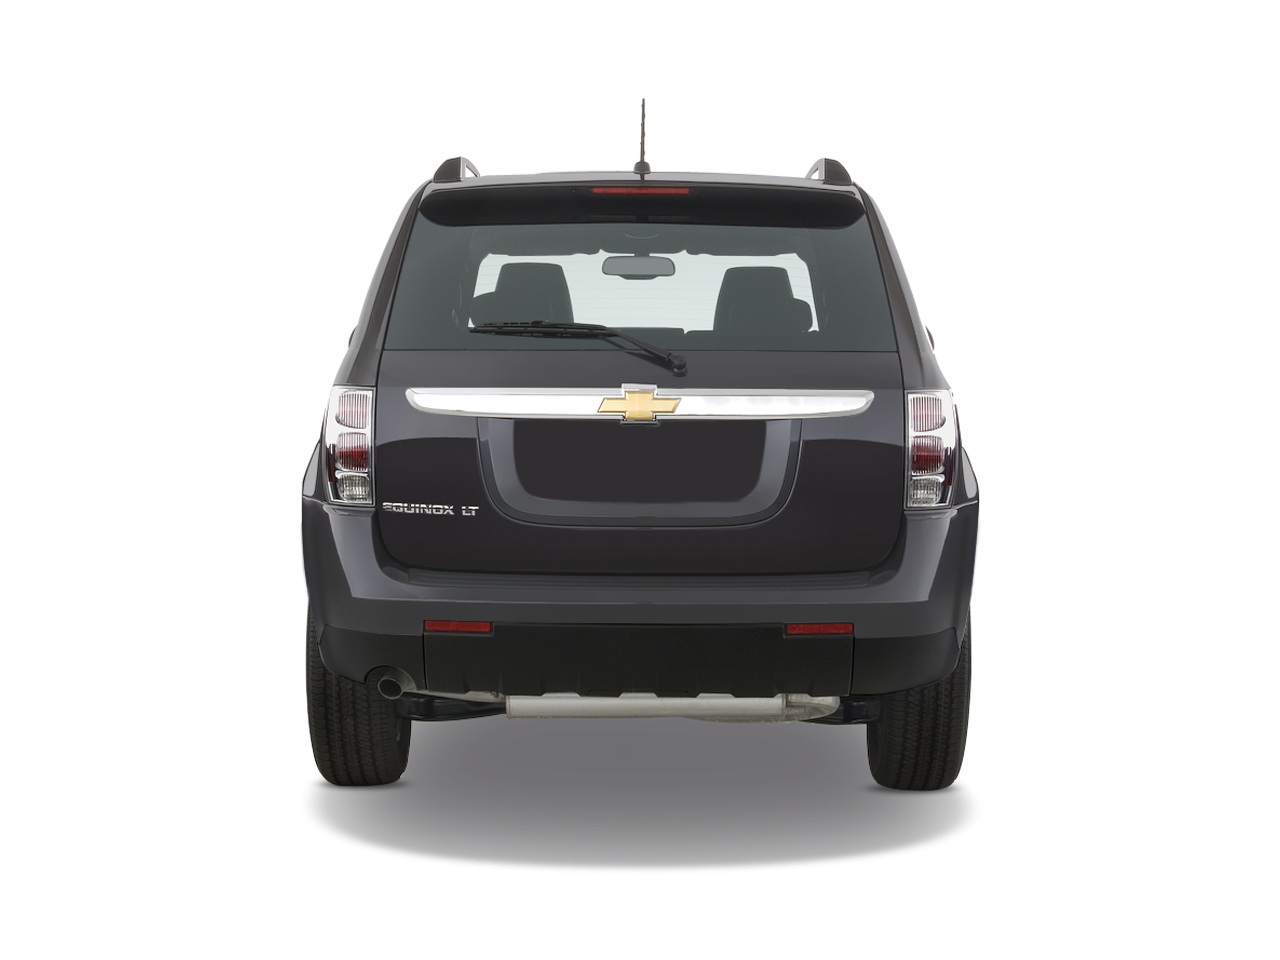 Equinox 2008 chevy equinox : 2008 Chevy Equinox Fuel Cell Diary - Day Two - Latest News ...